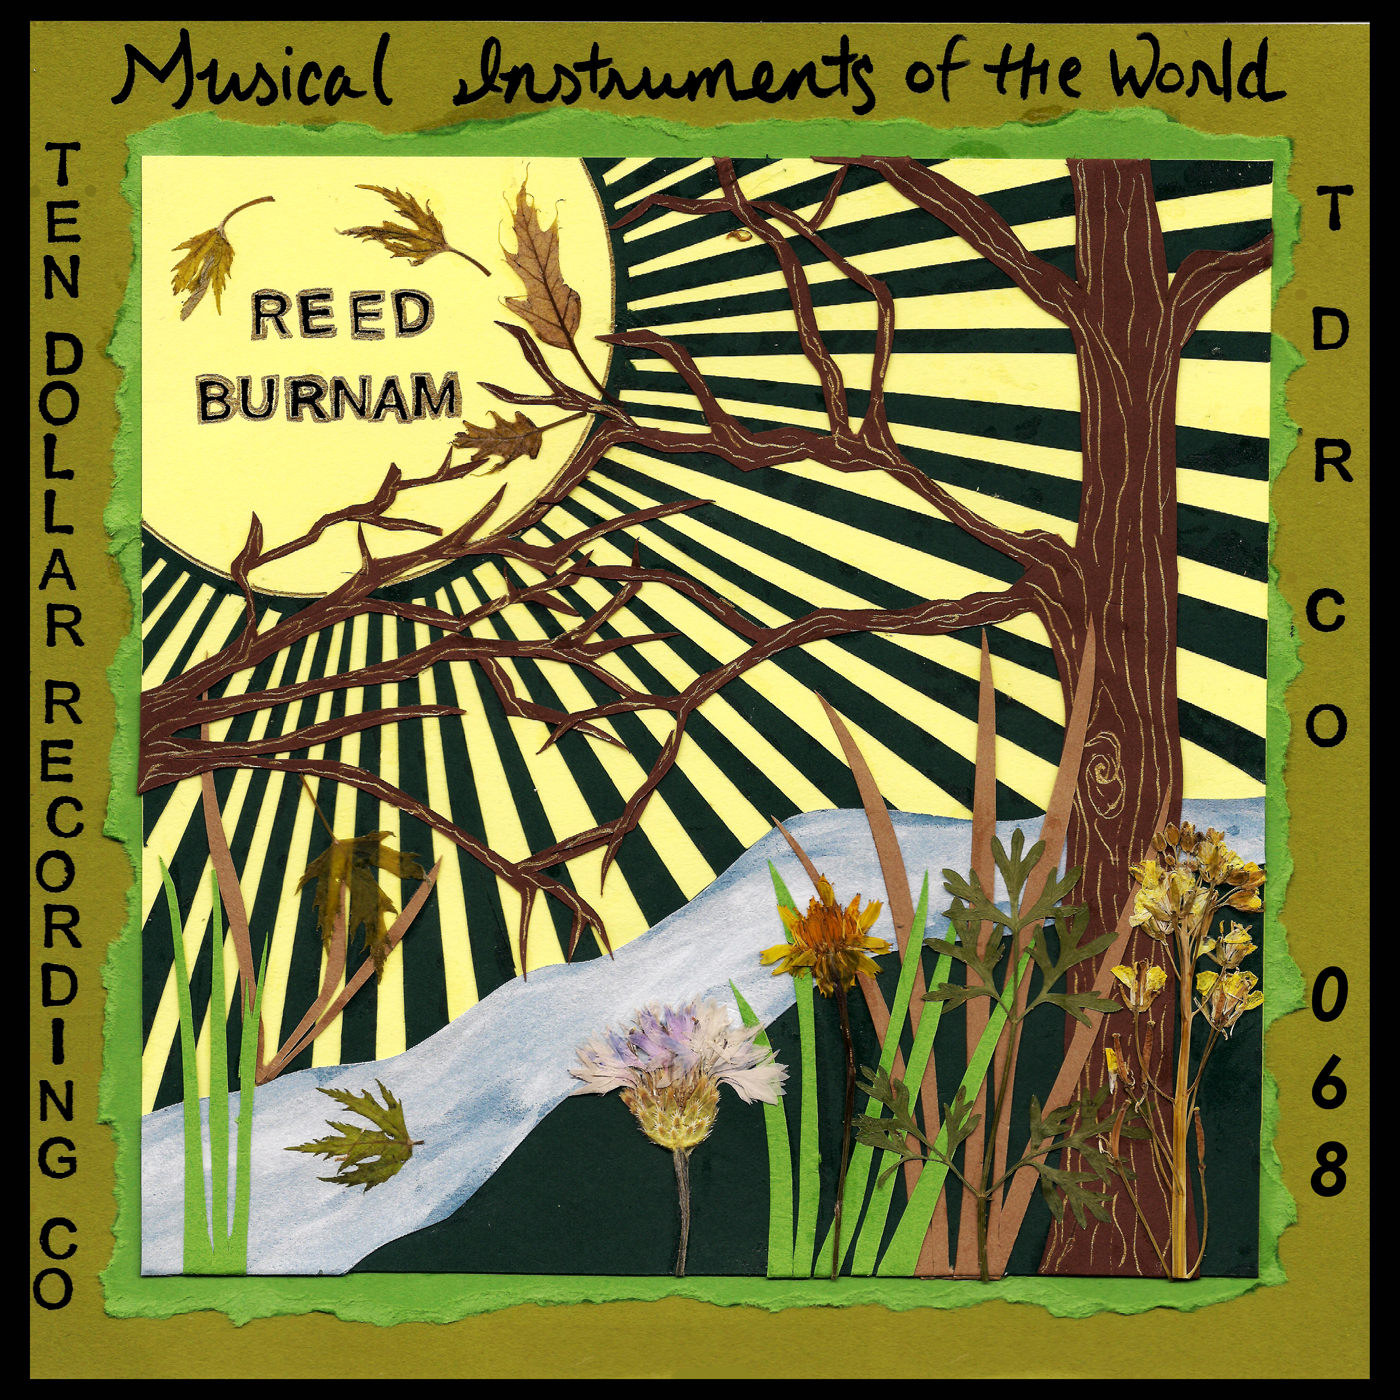 Reed Burnam - Musical Instruments of the World (Single)